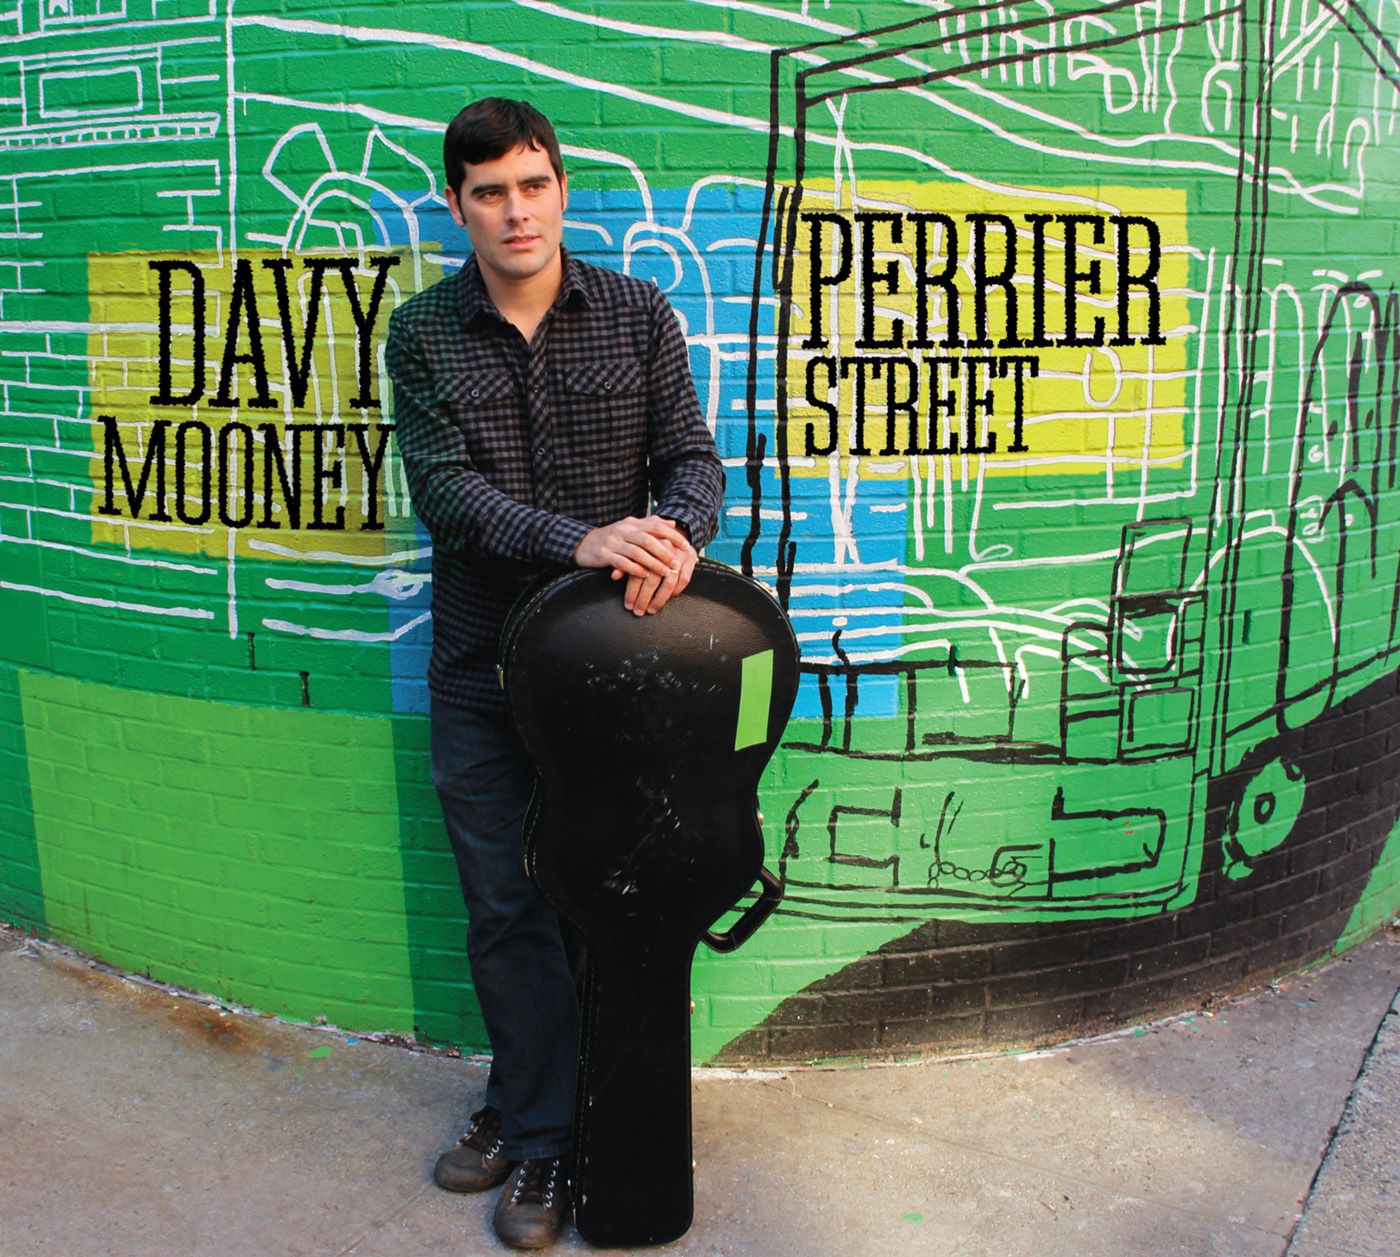 Perrier Street by Davy Mooney cover